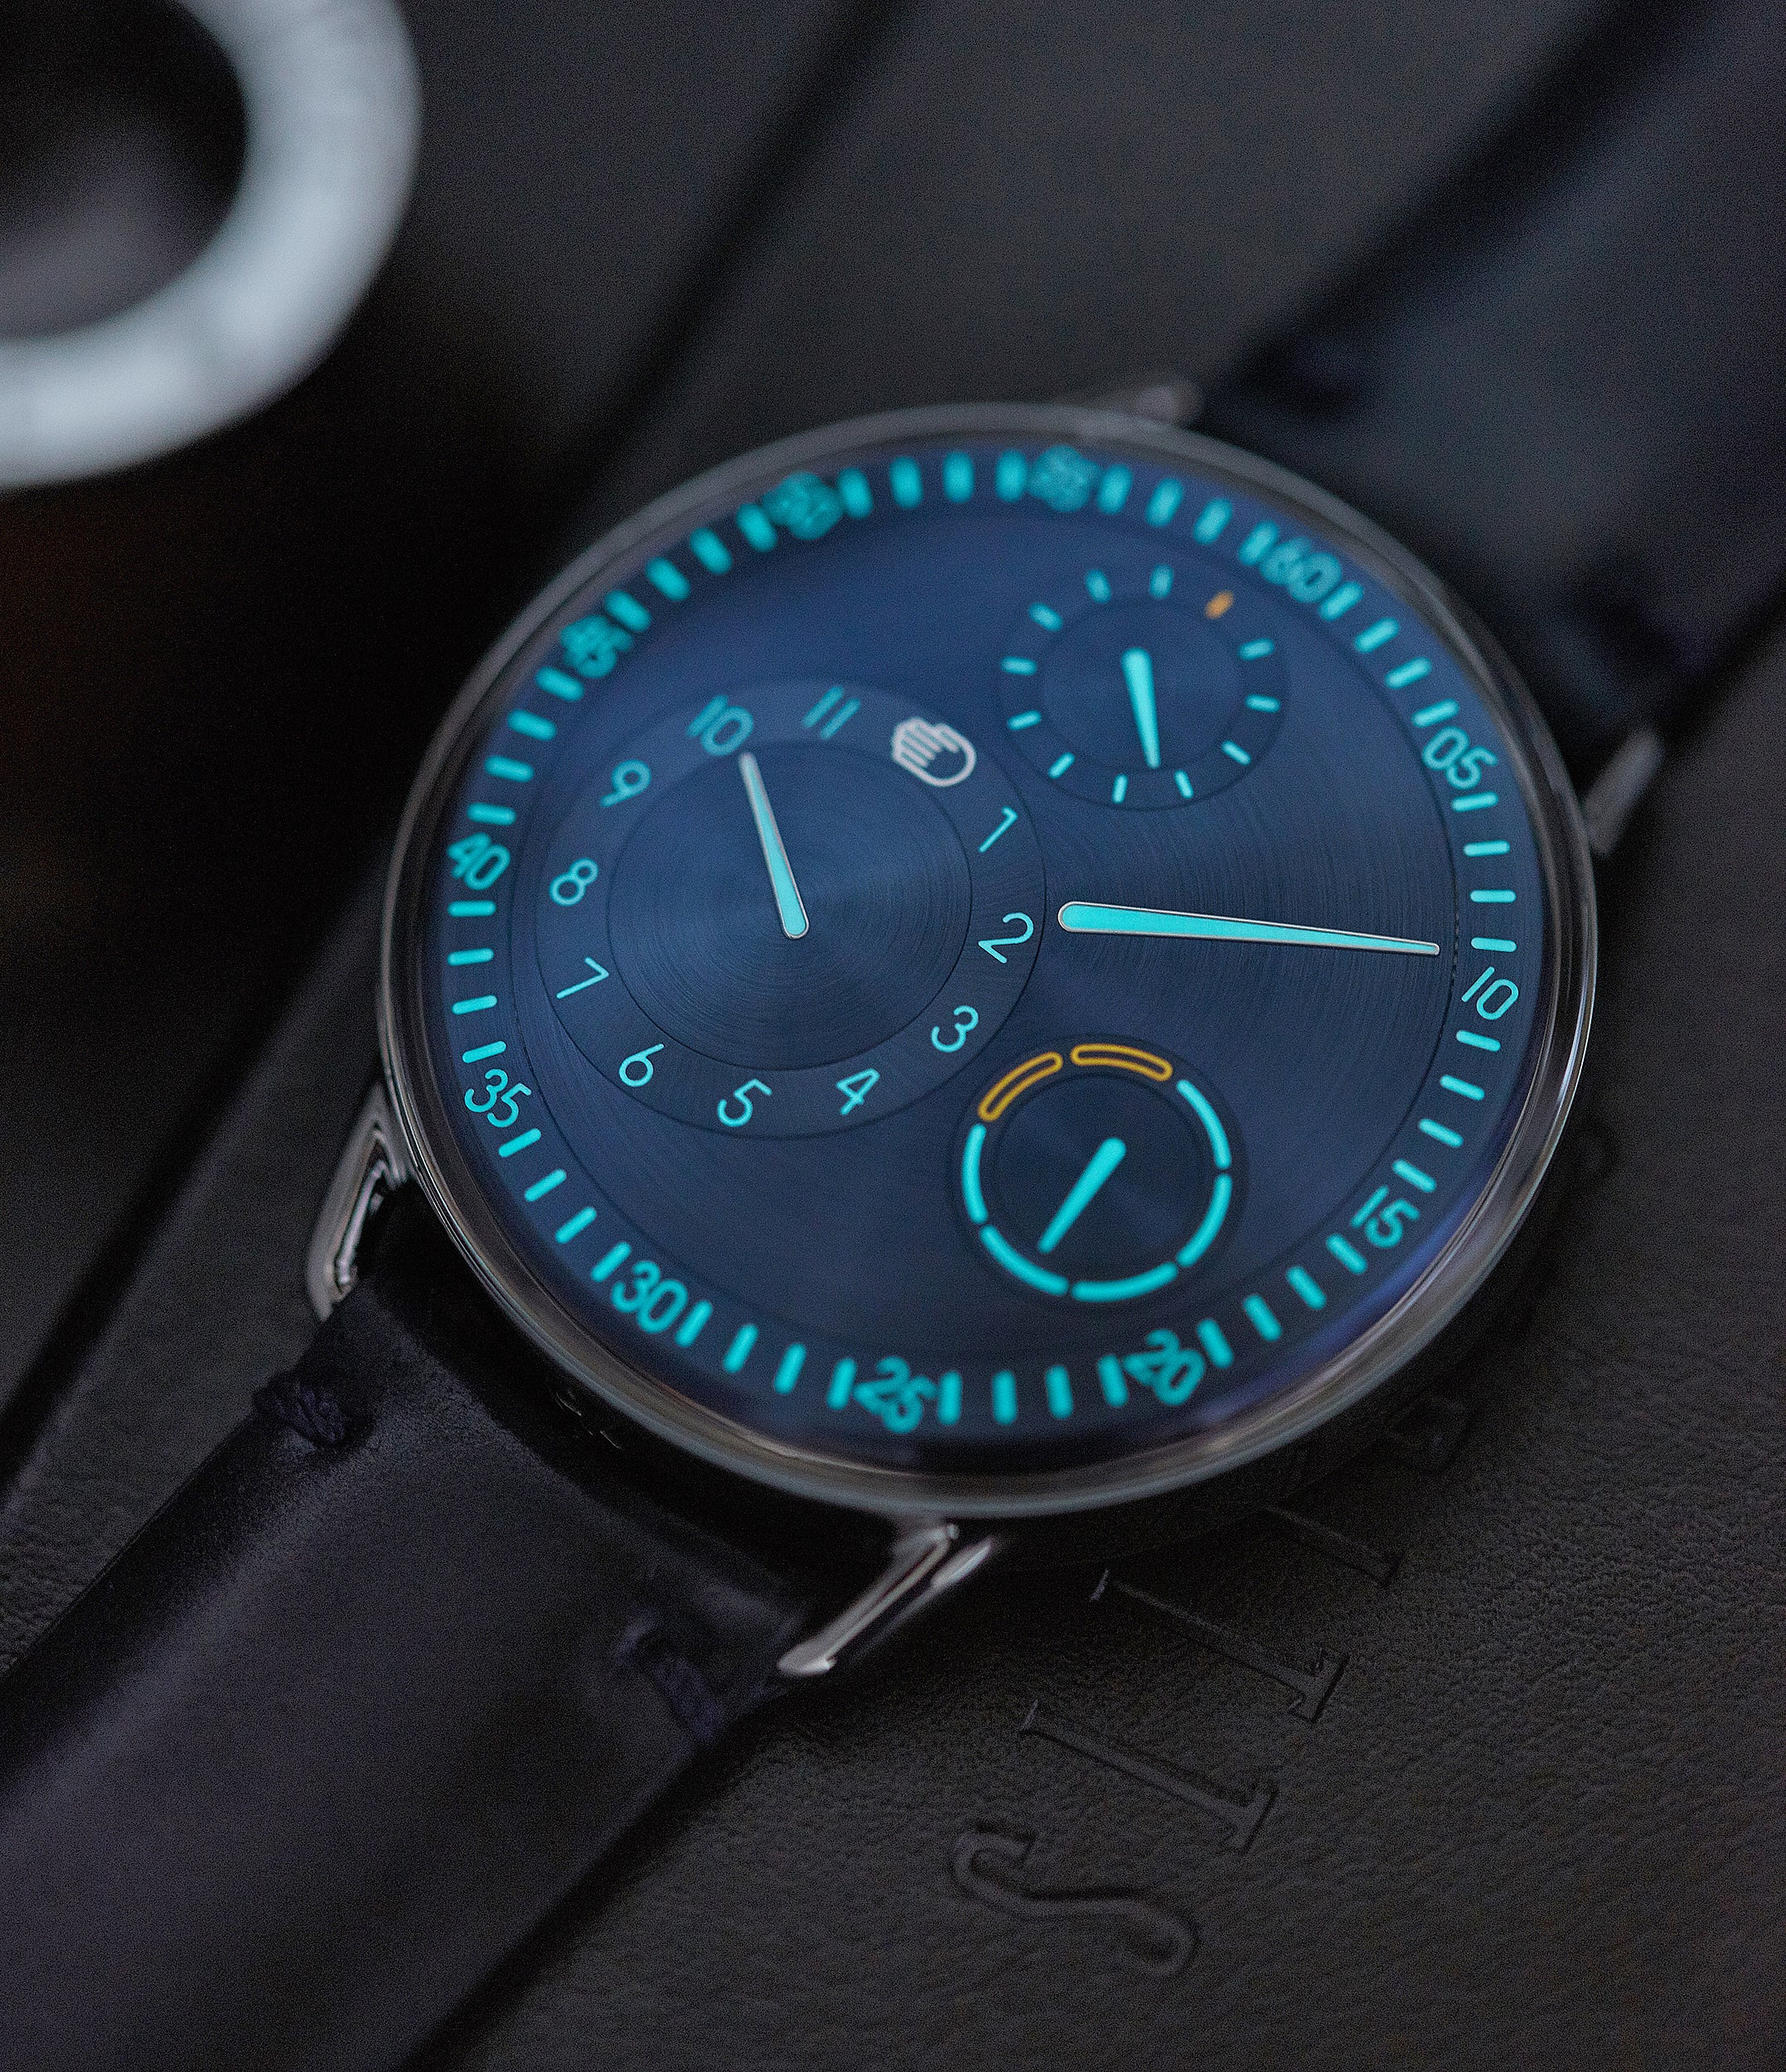 luminous blue dial Ressence Type 1N titanium independent watchmaker watch for sale online at A Collected Man London UK specialist of rare watches